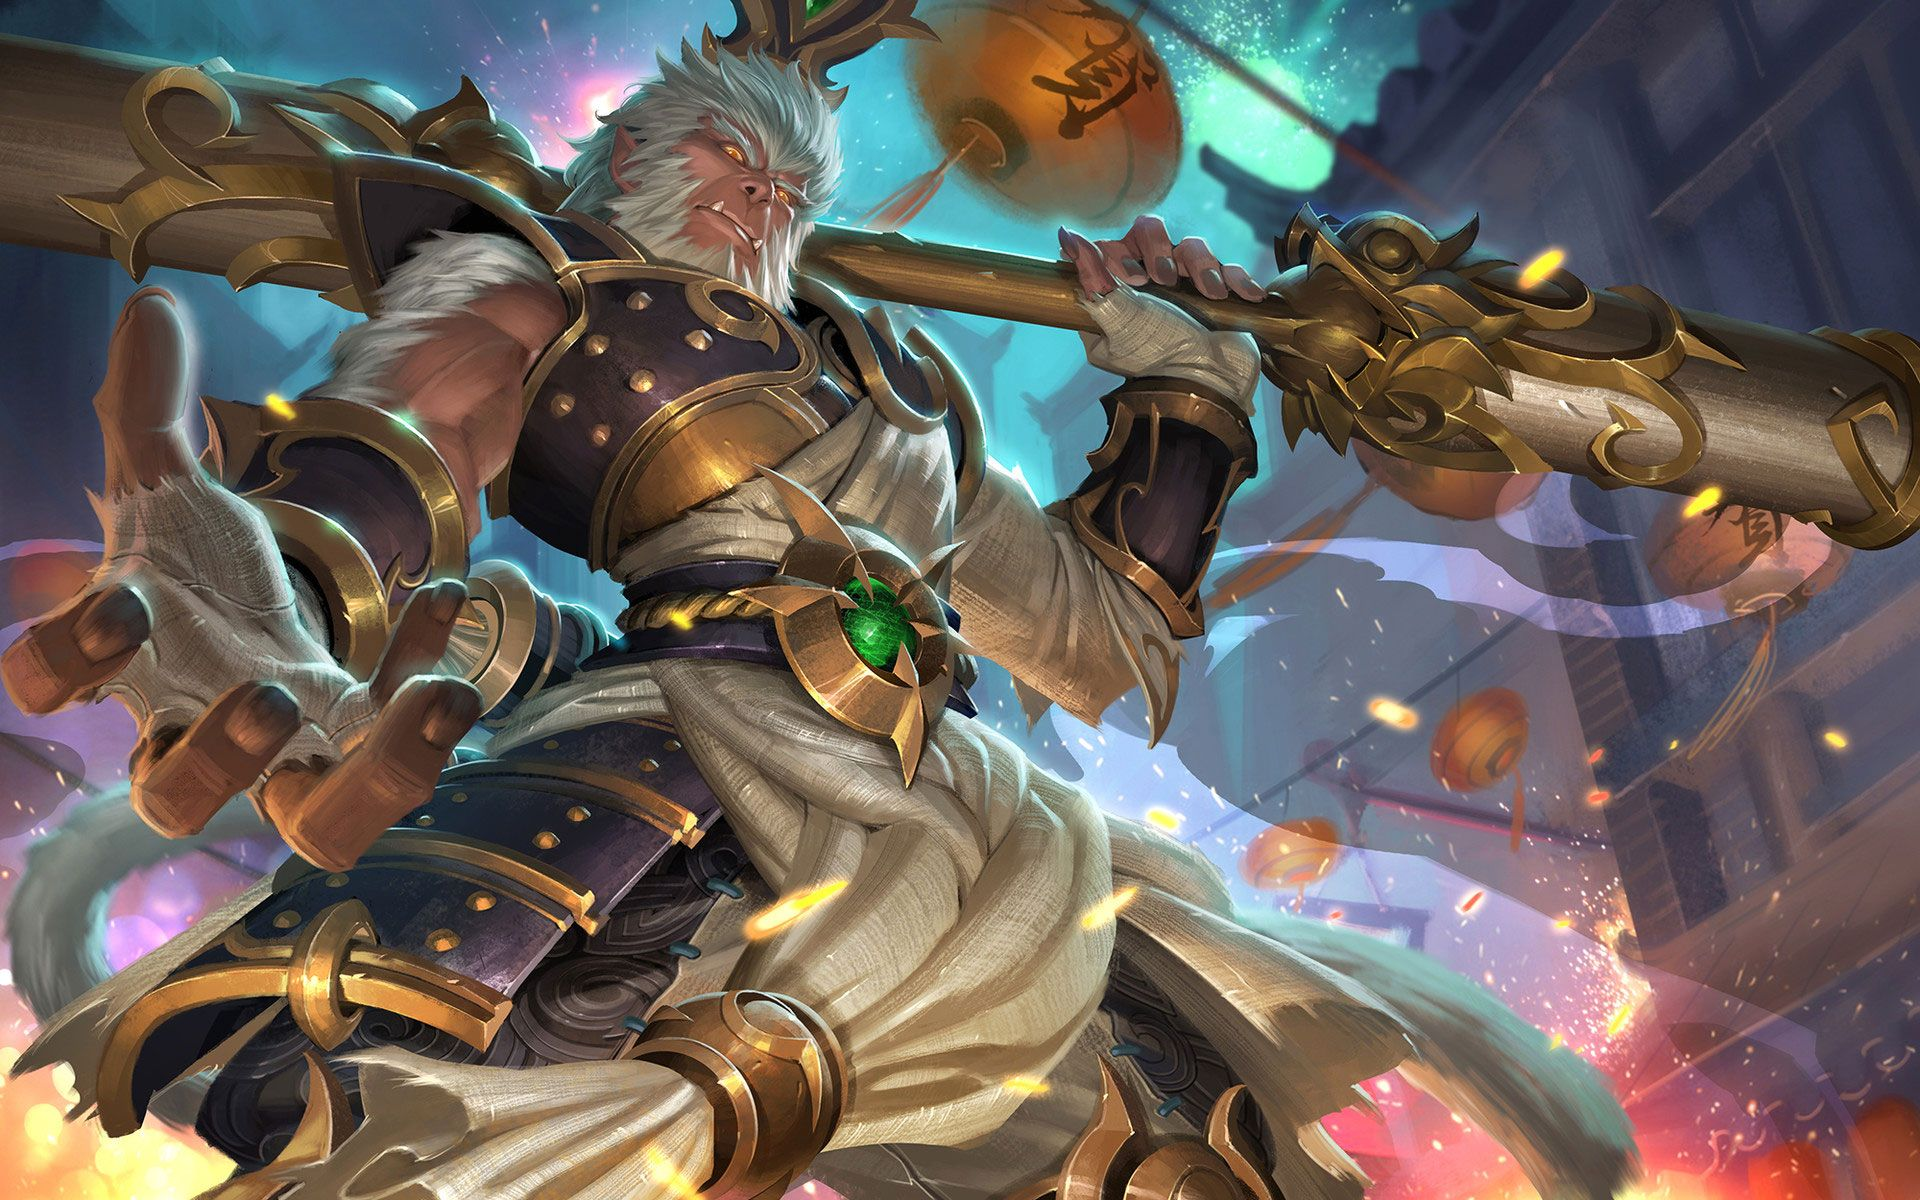 Download wallpaper Fanart Concept Radiant Wukong Skin by